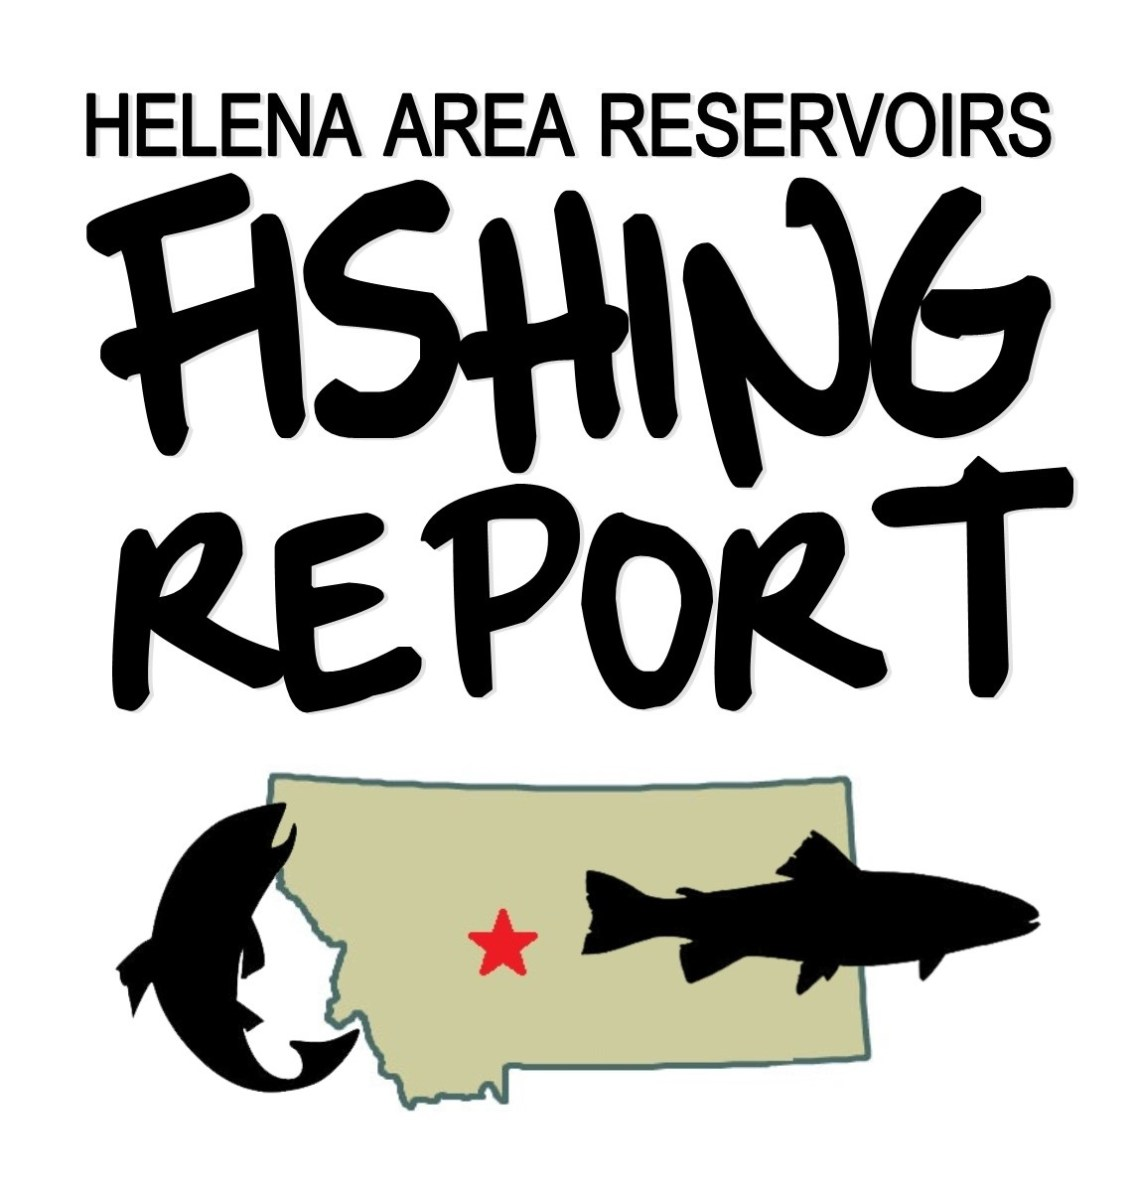 Helena Area Reservoirs Fishing Report for the Week of 9.15.14